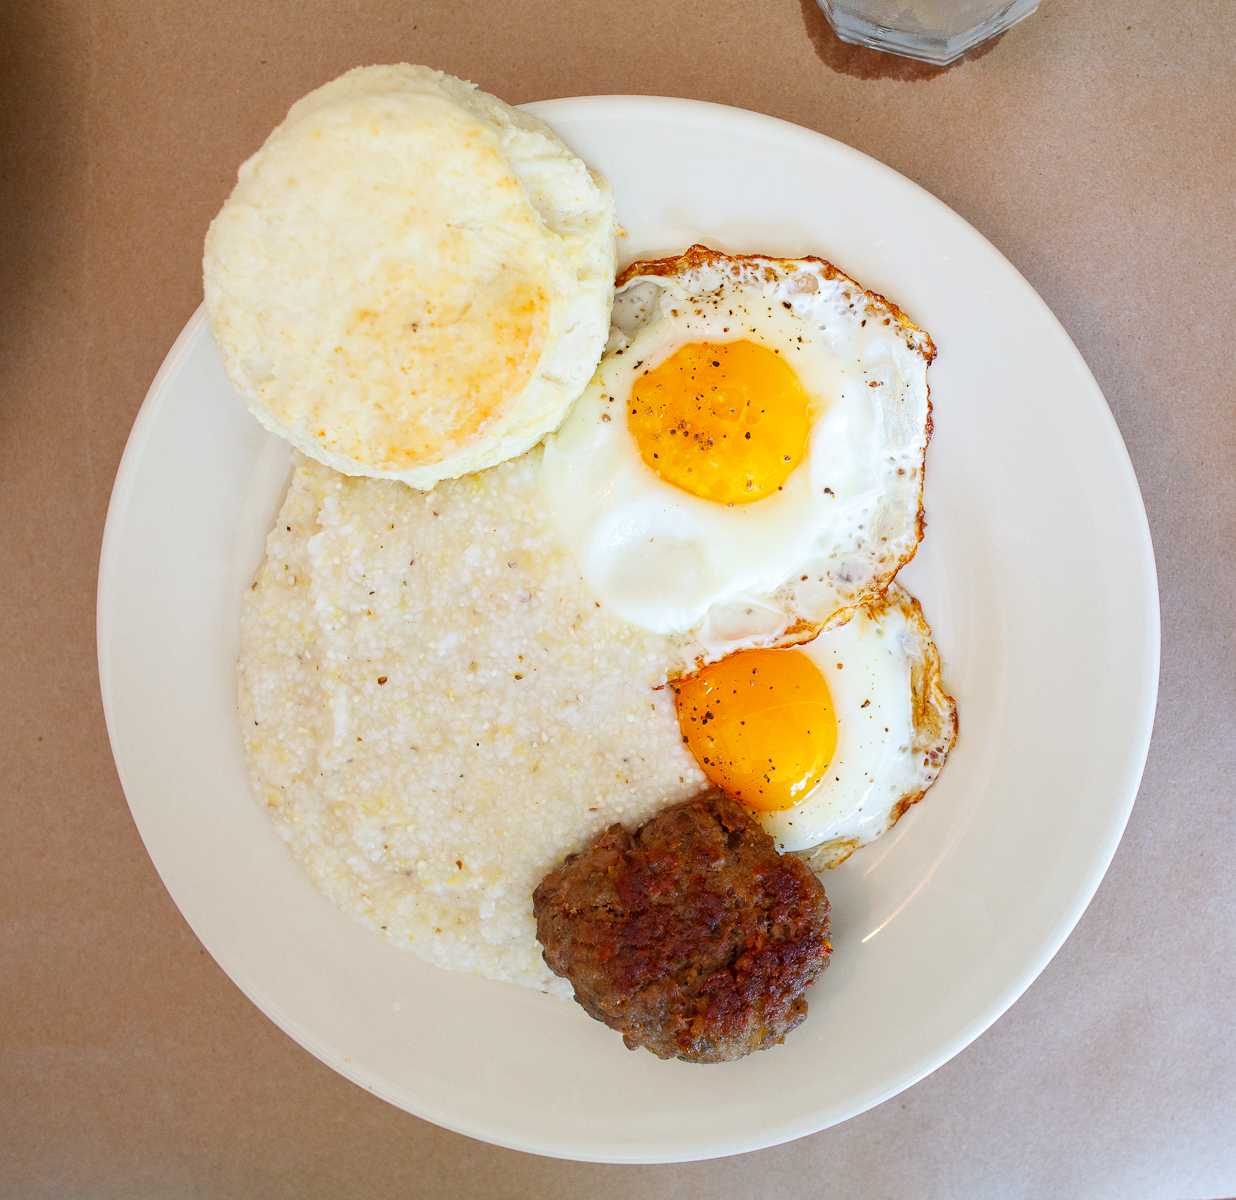 Two eggs sunny side up with Hominy grits and a biscuit ($7)